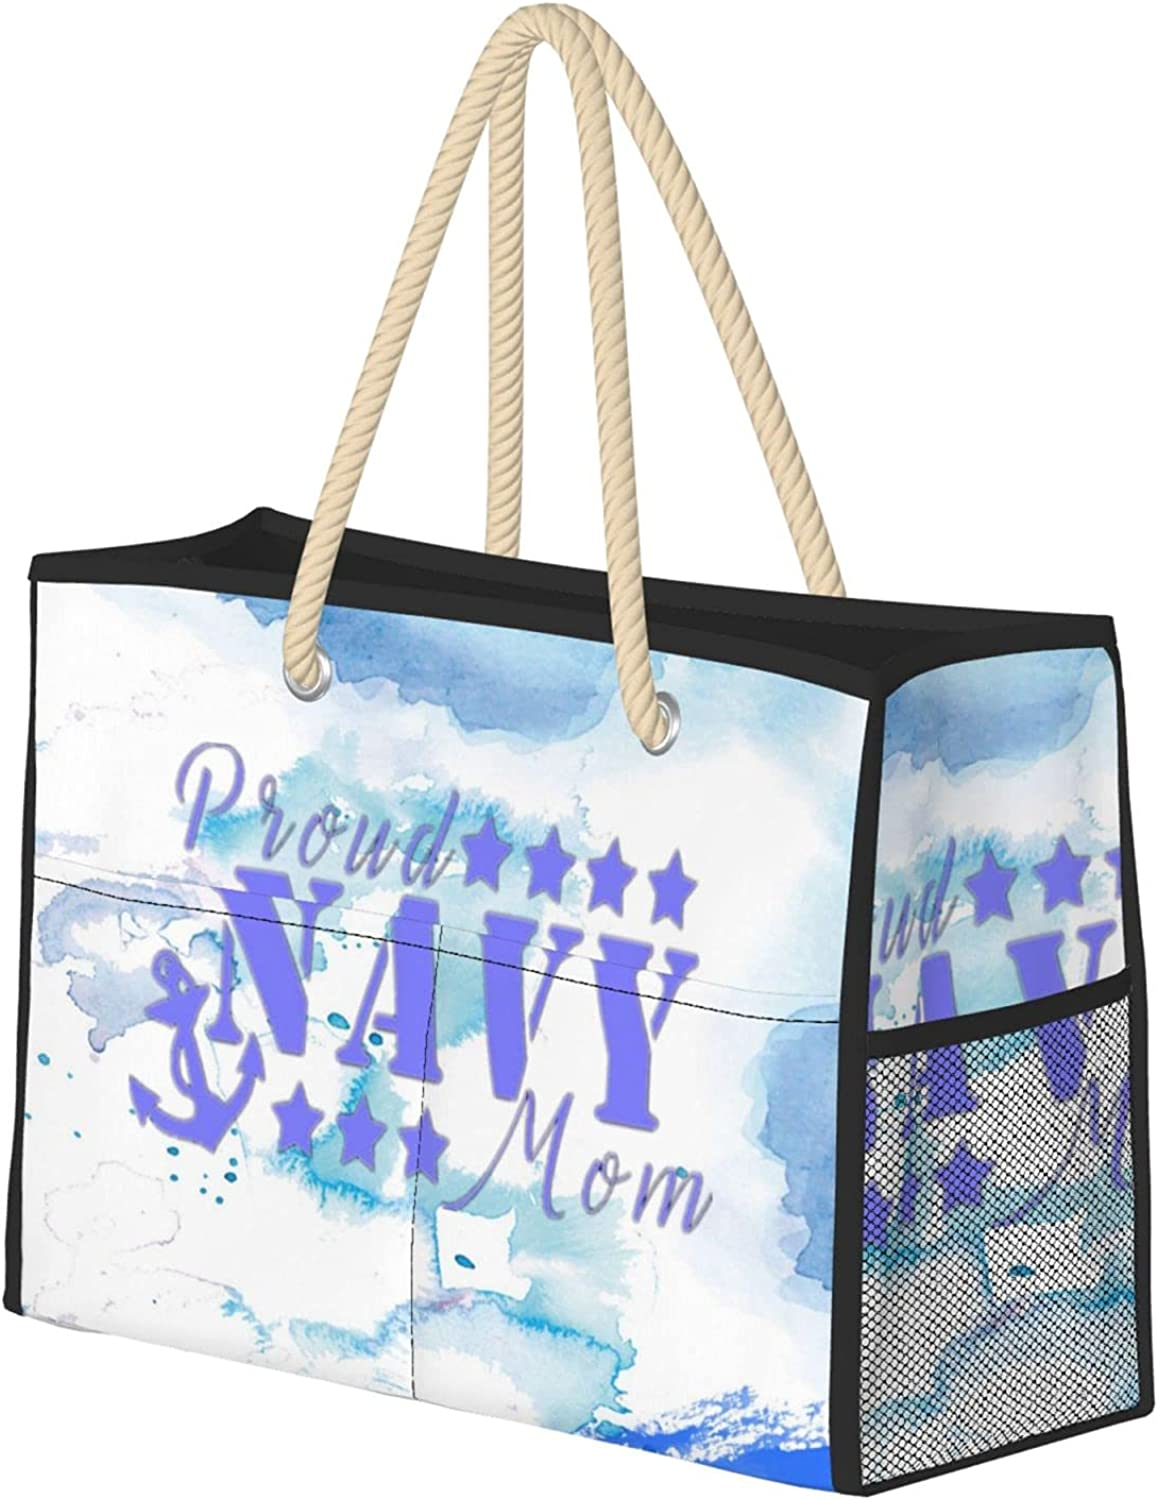 Proud Navy Mom Beach Bag Super sale period limited Large Groc Decoration Tote Reusable NEW